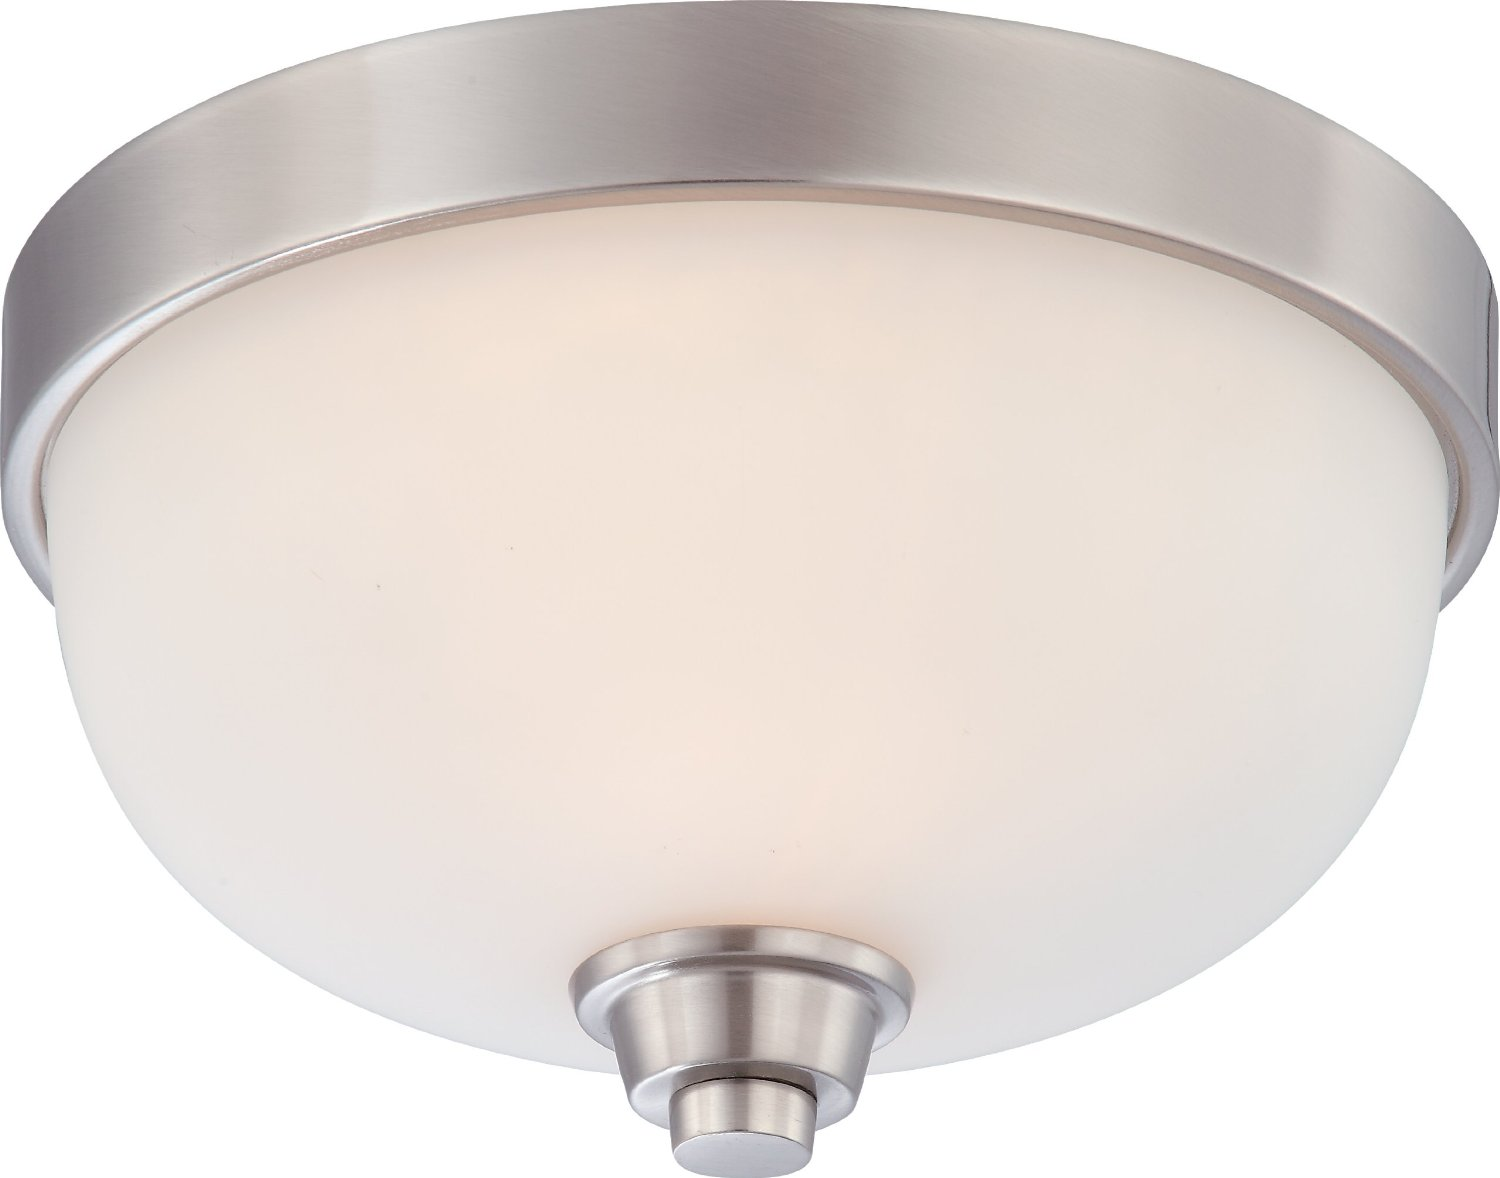 Sylvania 75251 LED Indoor Ceiling Mounted Fixture